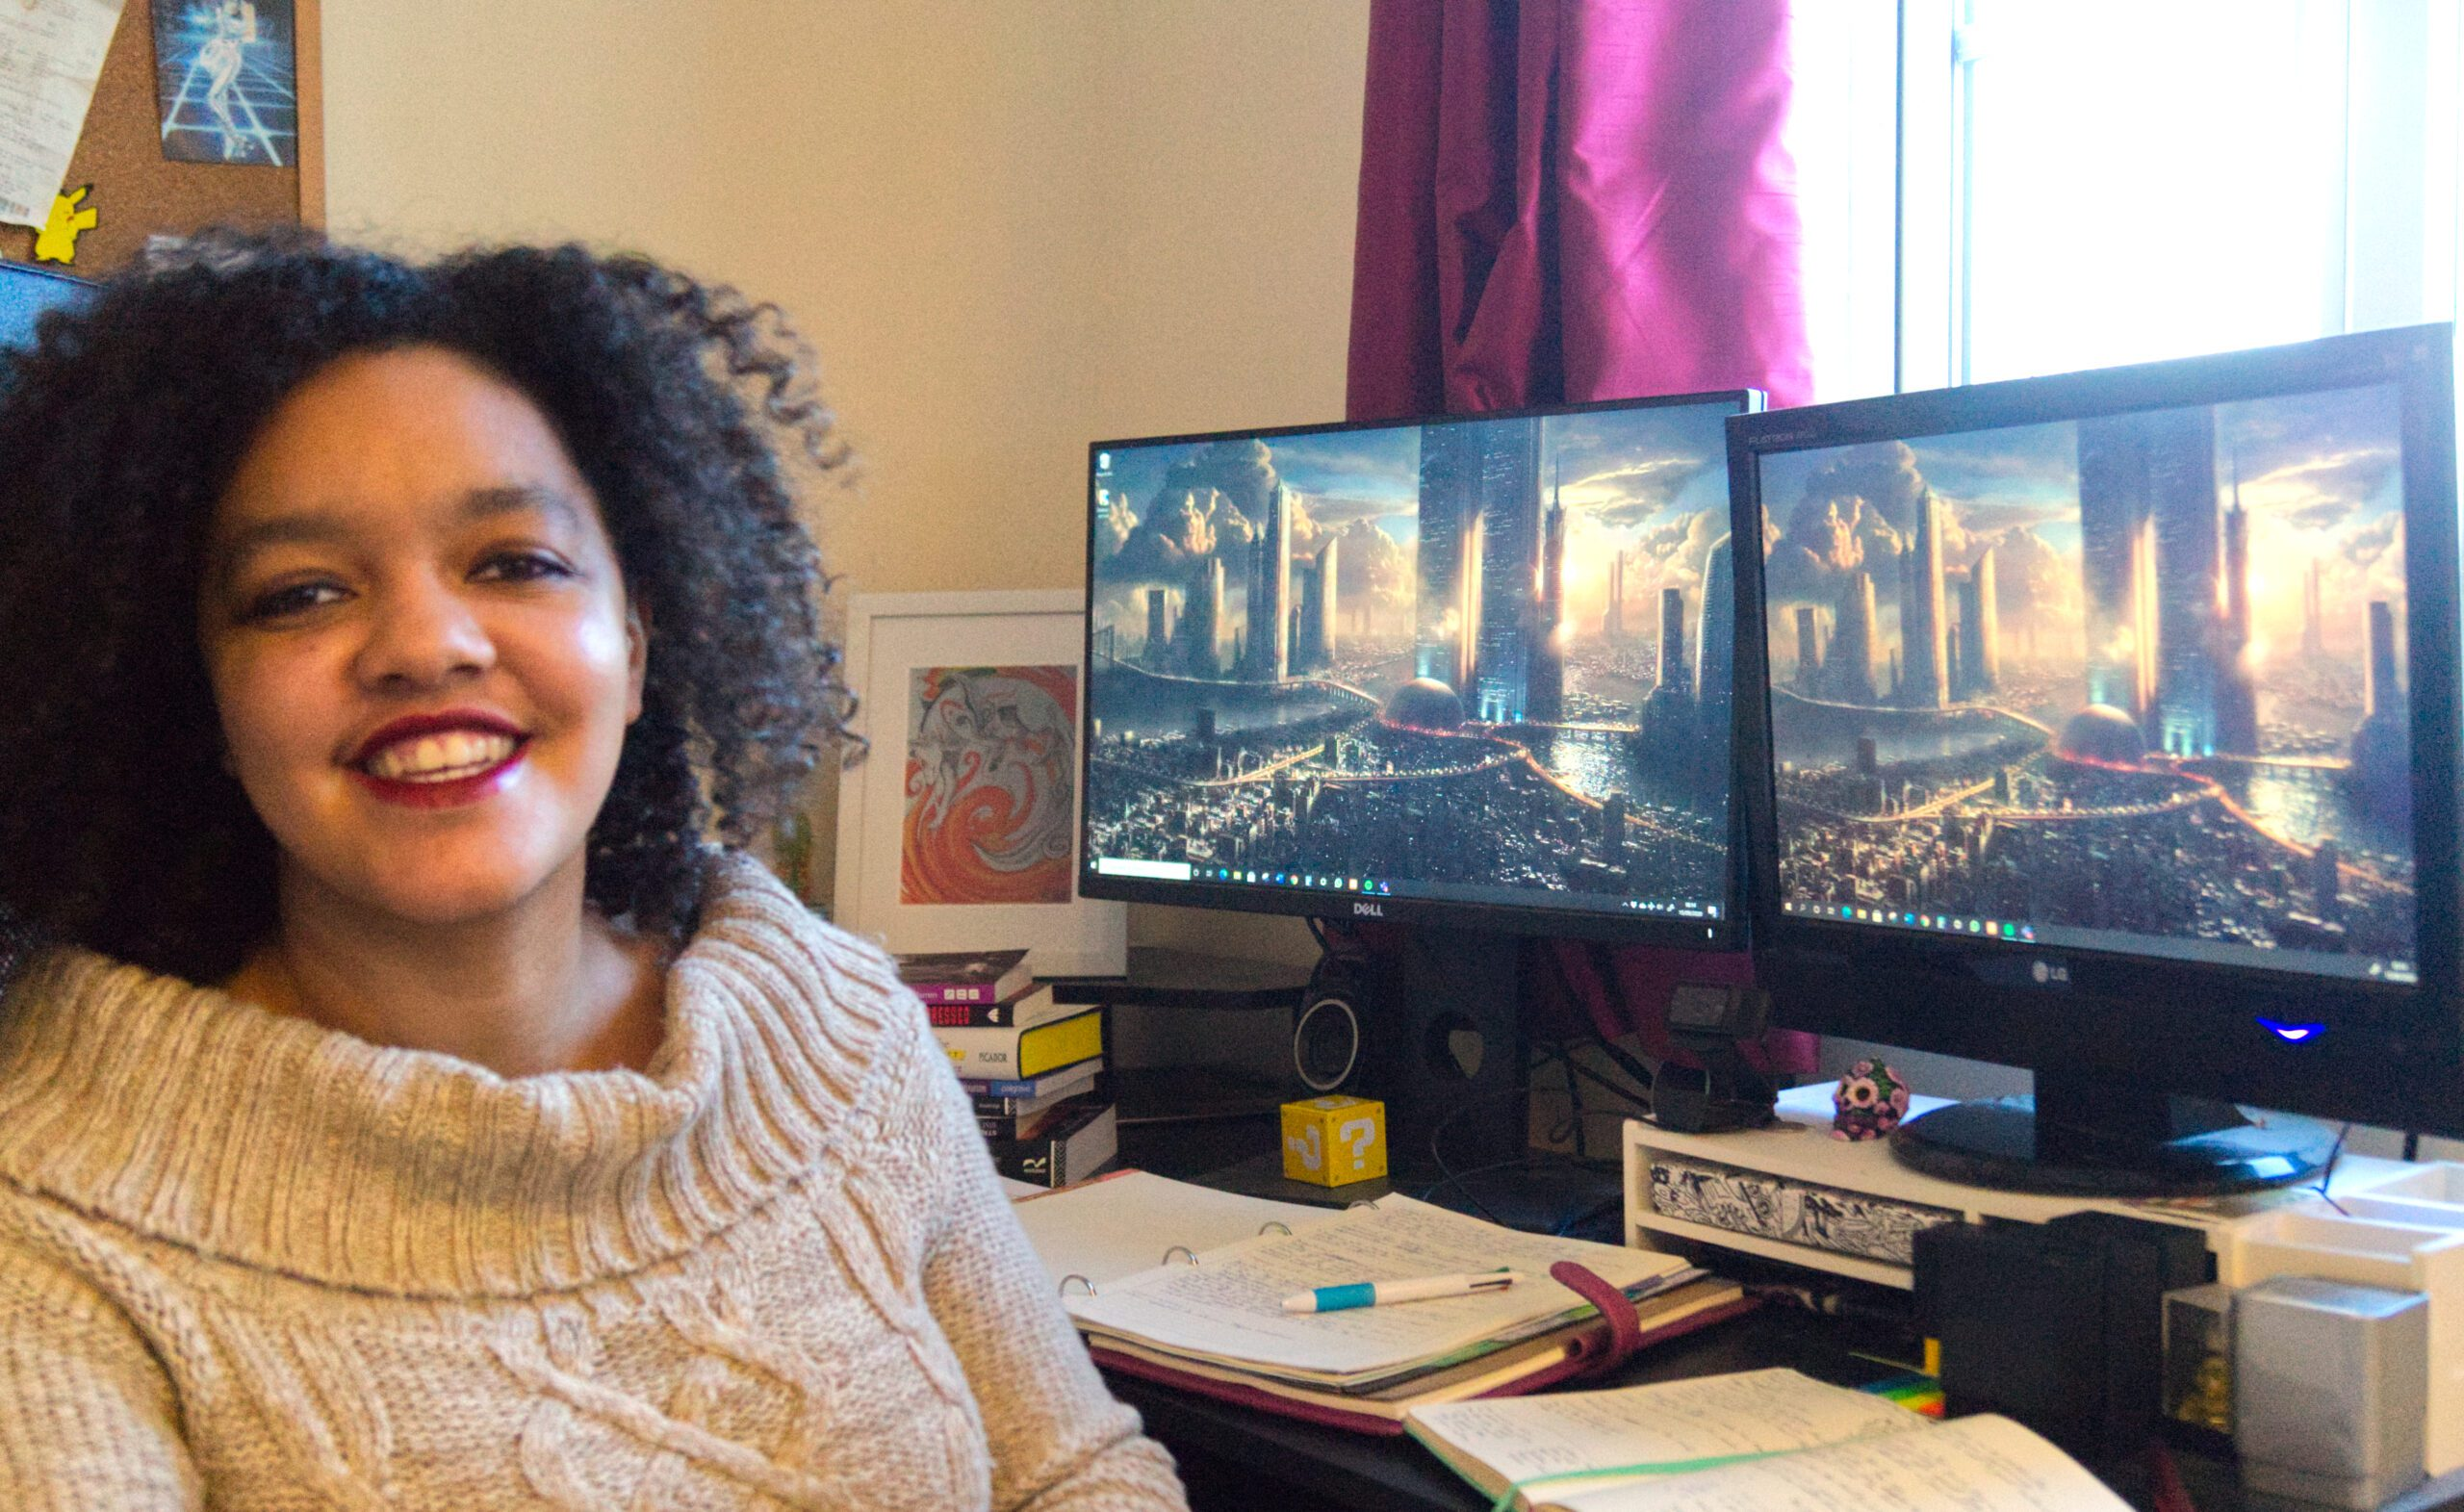 A mixed race woman sits in front of two computer screens, smiling.